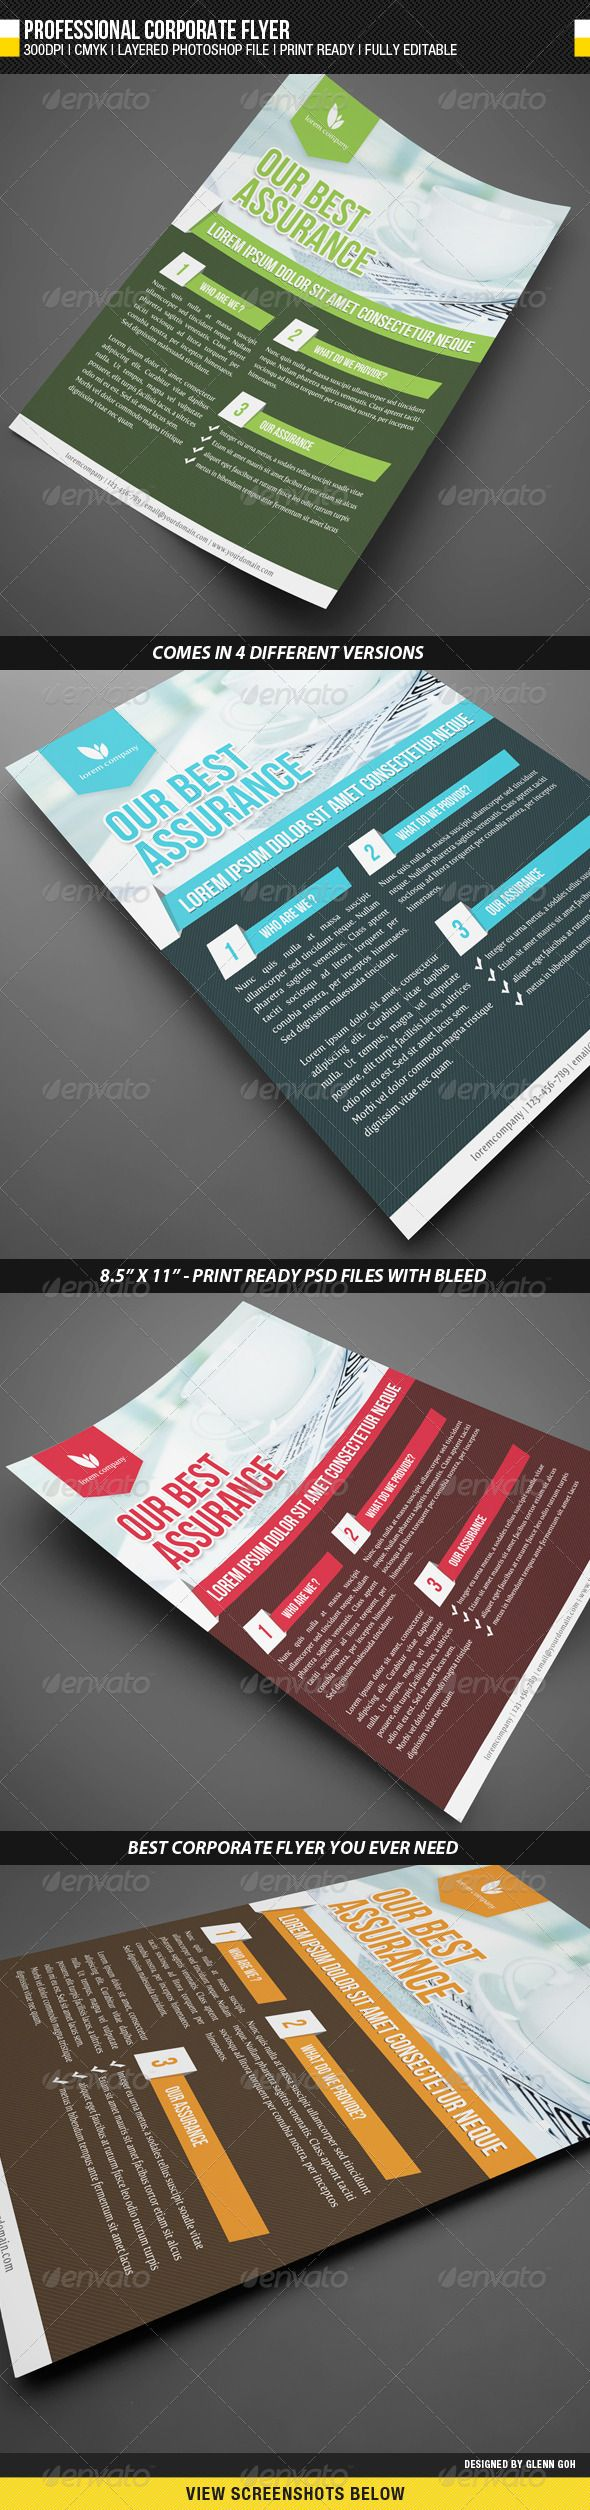 Professional Corporate Flyer  Graphicriver Item For Sale  Studio